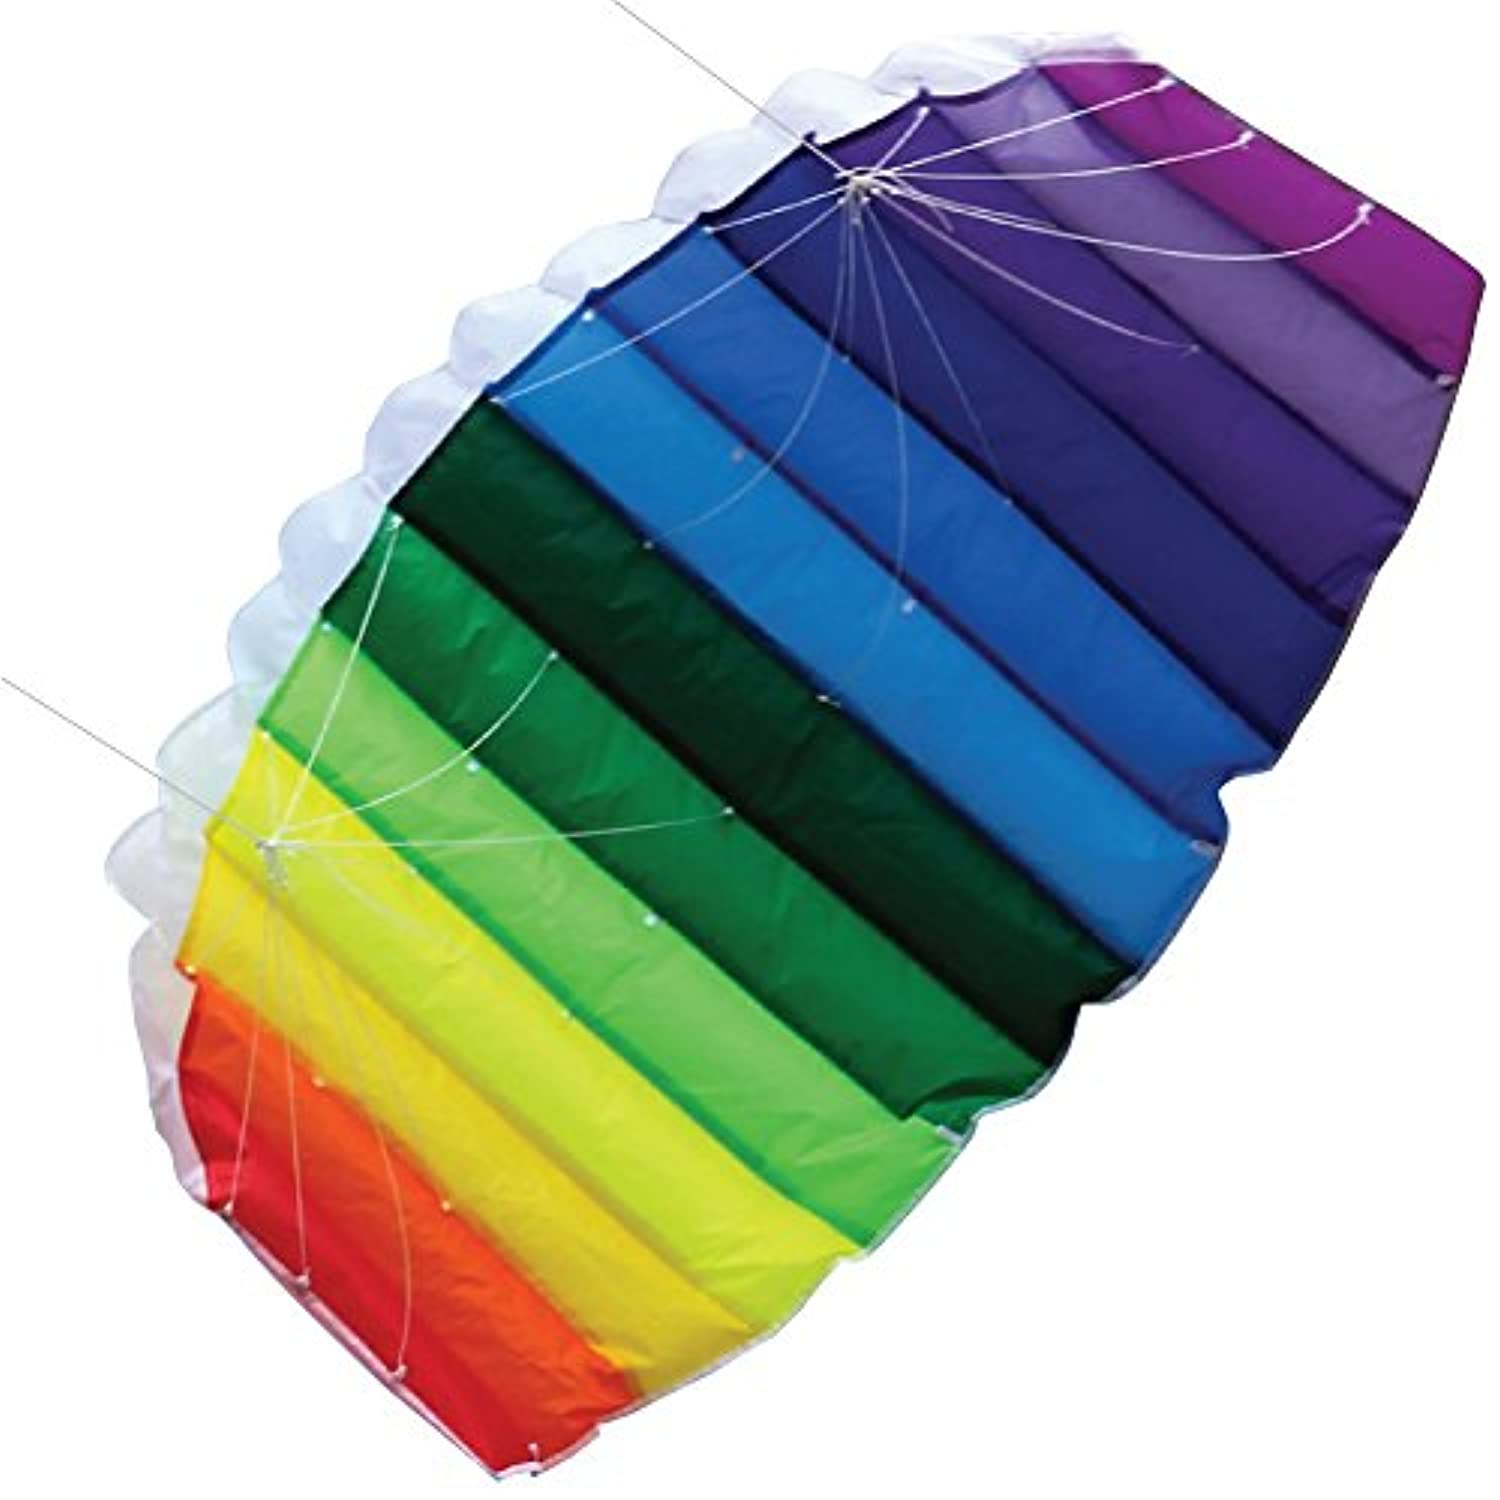 Moon Glow Sports Airfoil Kite Dual-Line with Kite Strings, Handles, Carry Bag, Winder, FREE Kite Flying Tips eBook, Easy Assembly